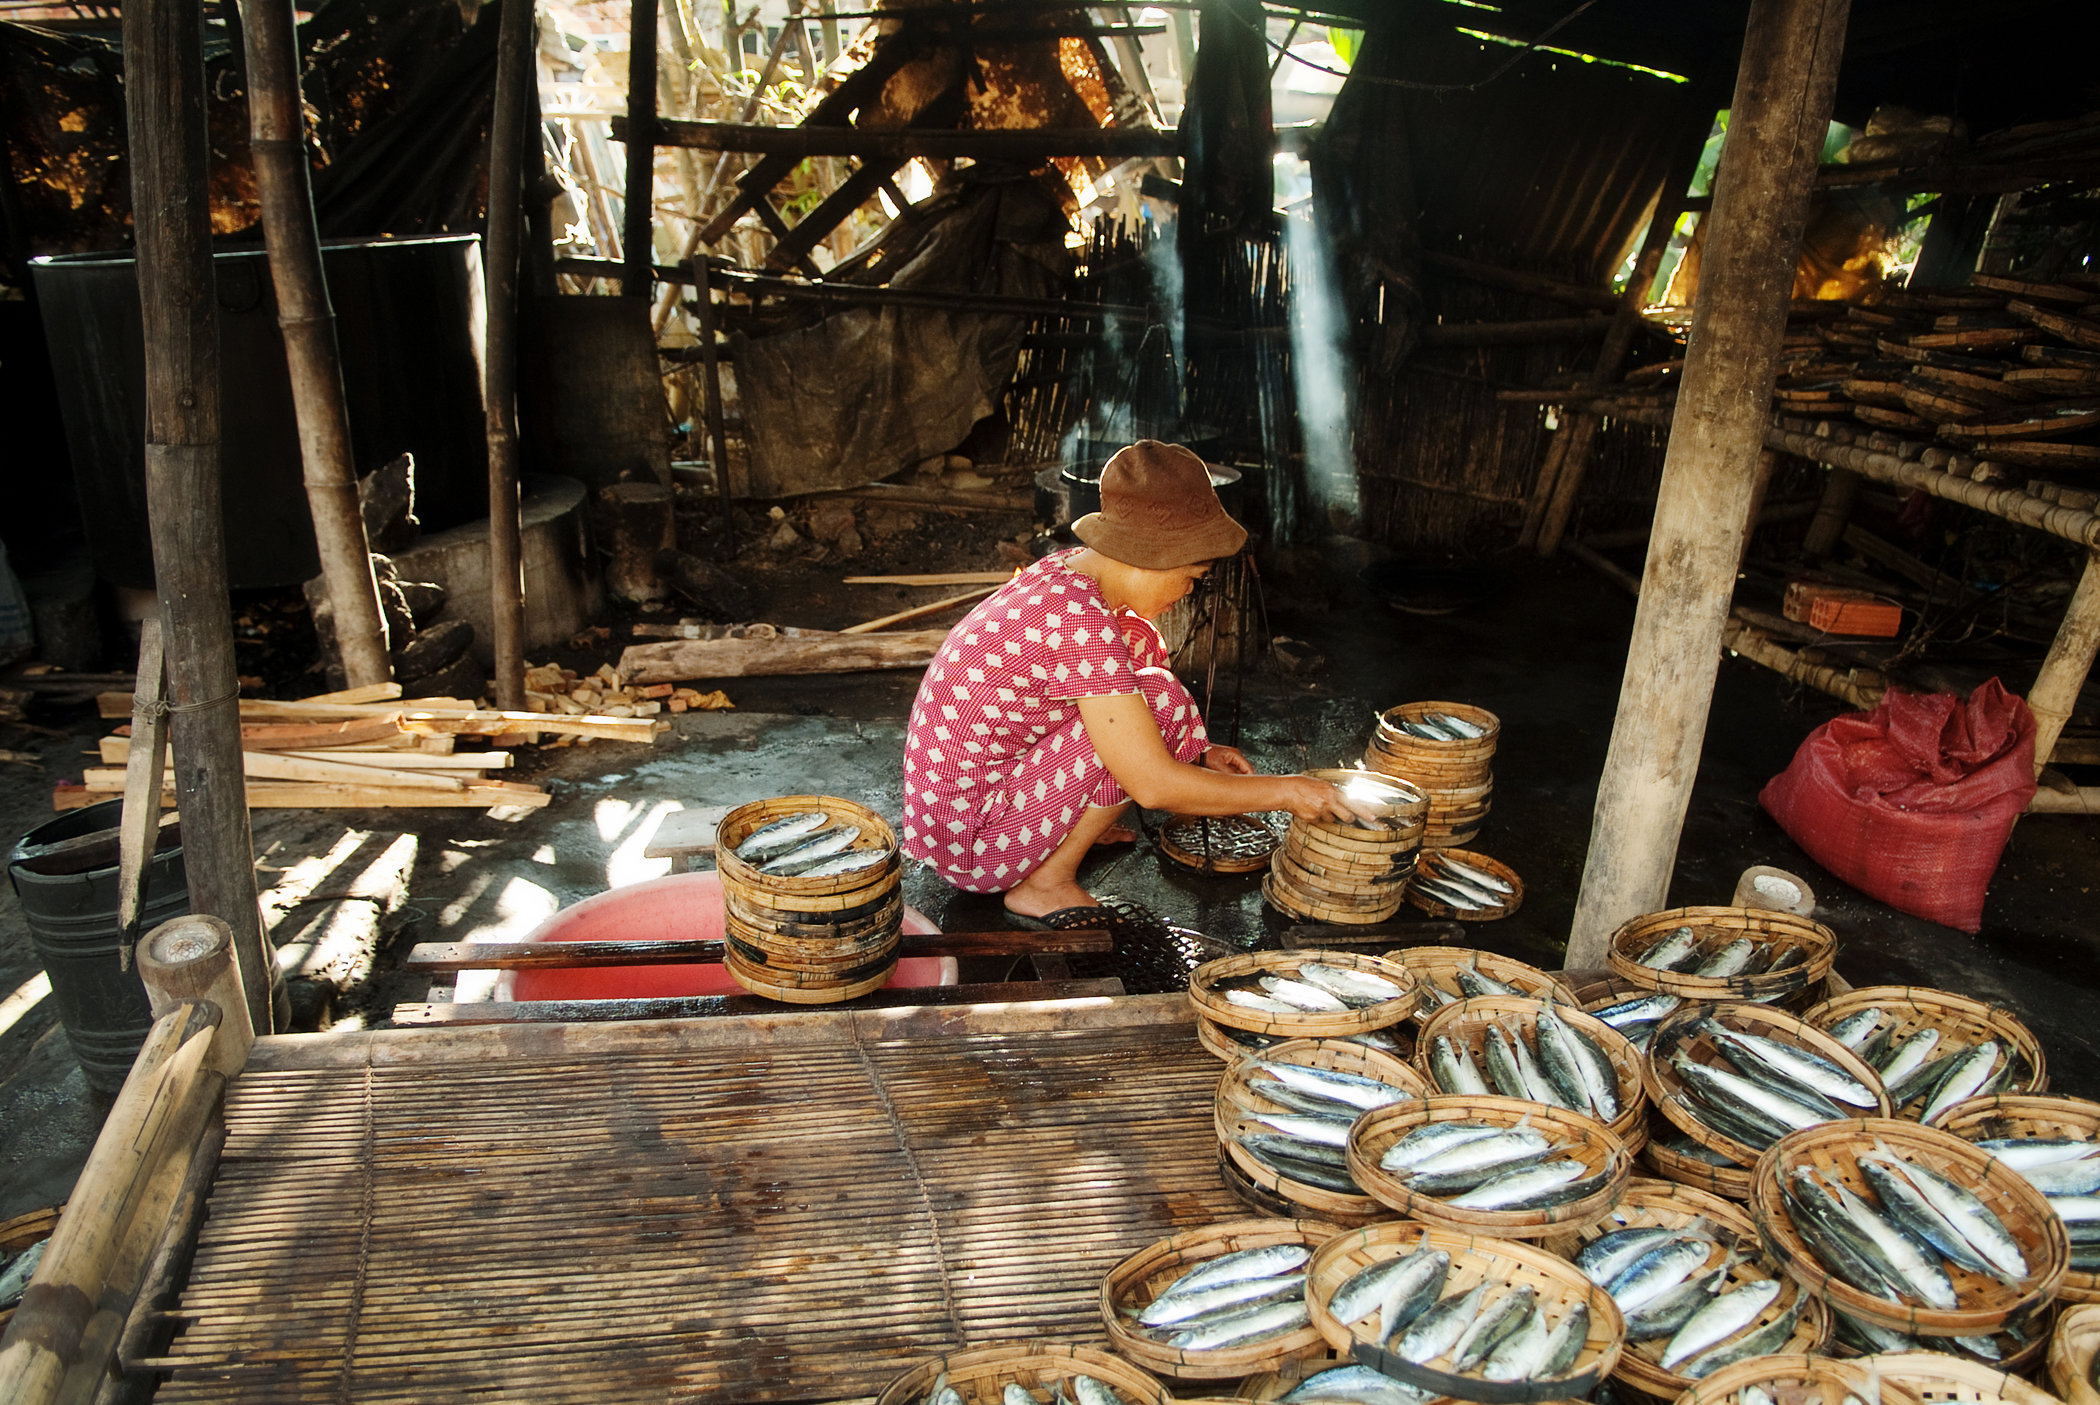 Villager Drying Fish